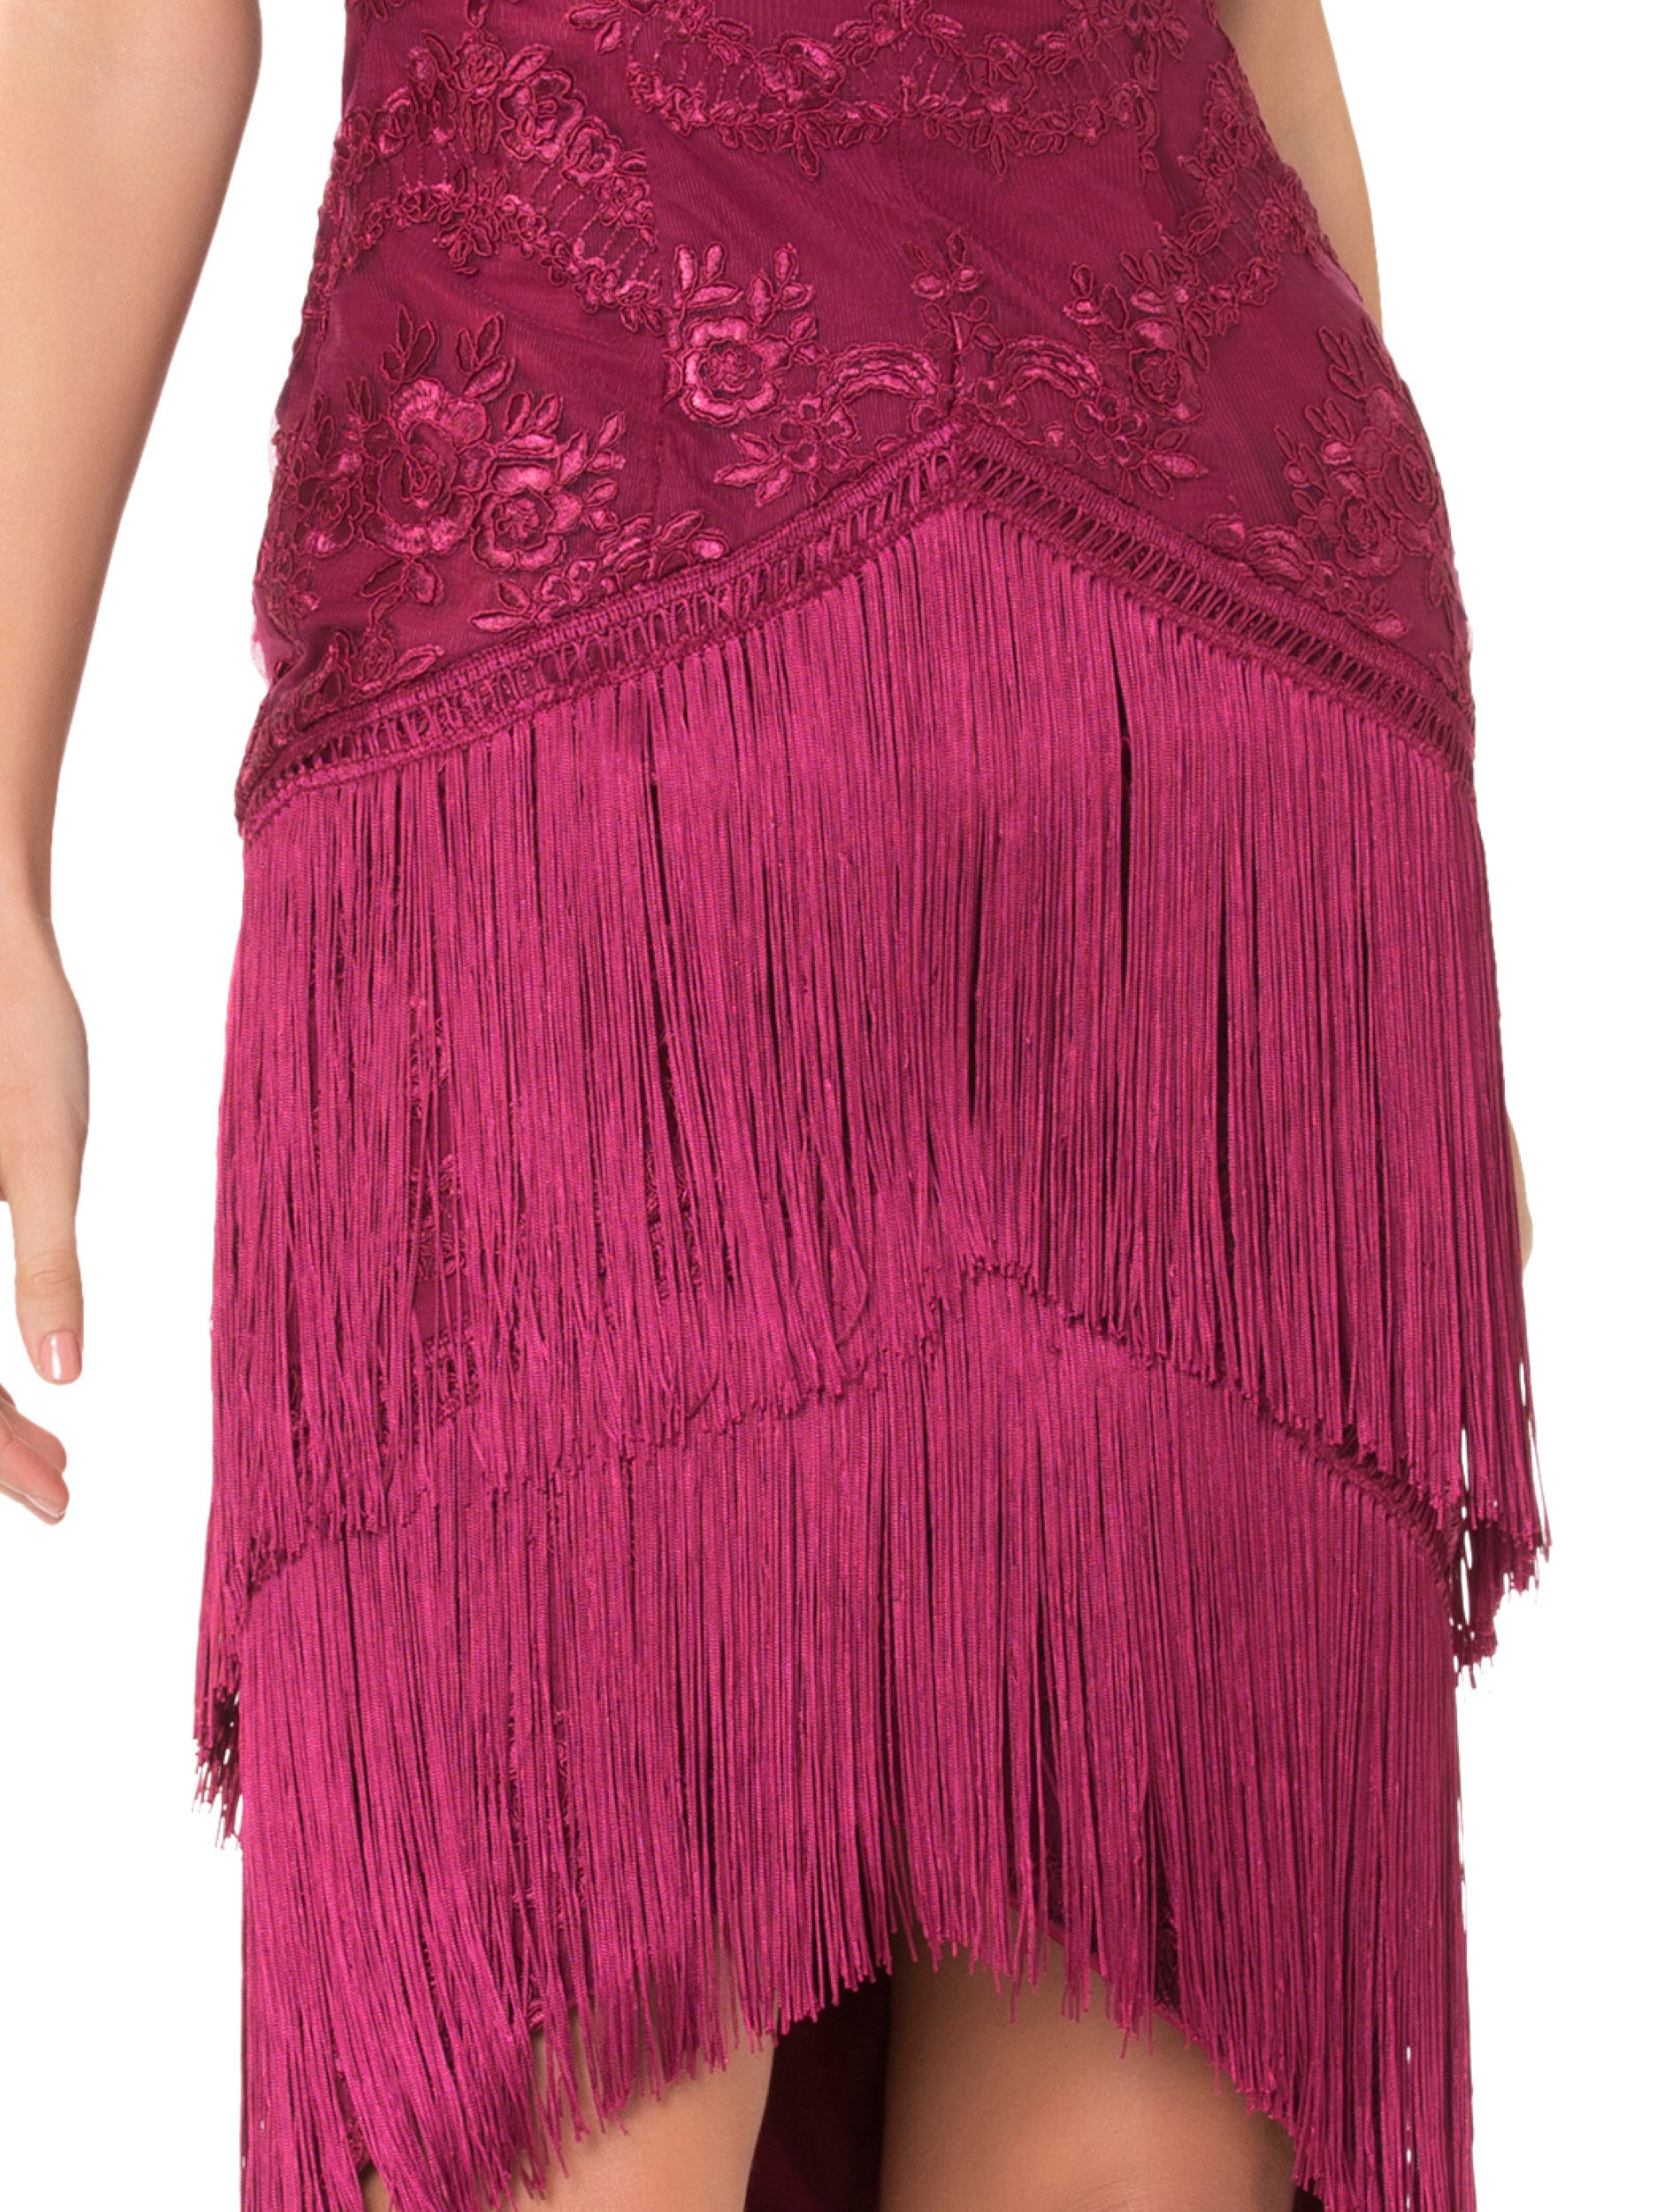 Mombasa Dress Shop Dresses Online From Review Review